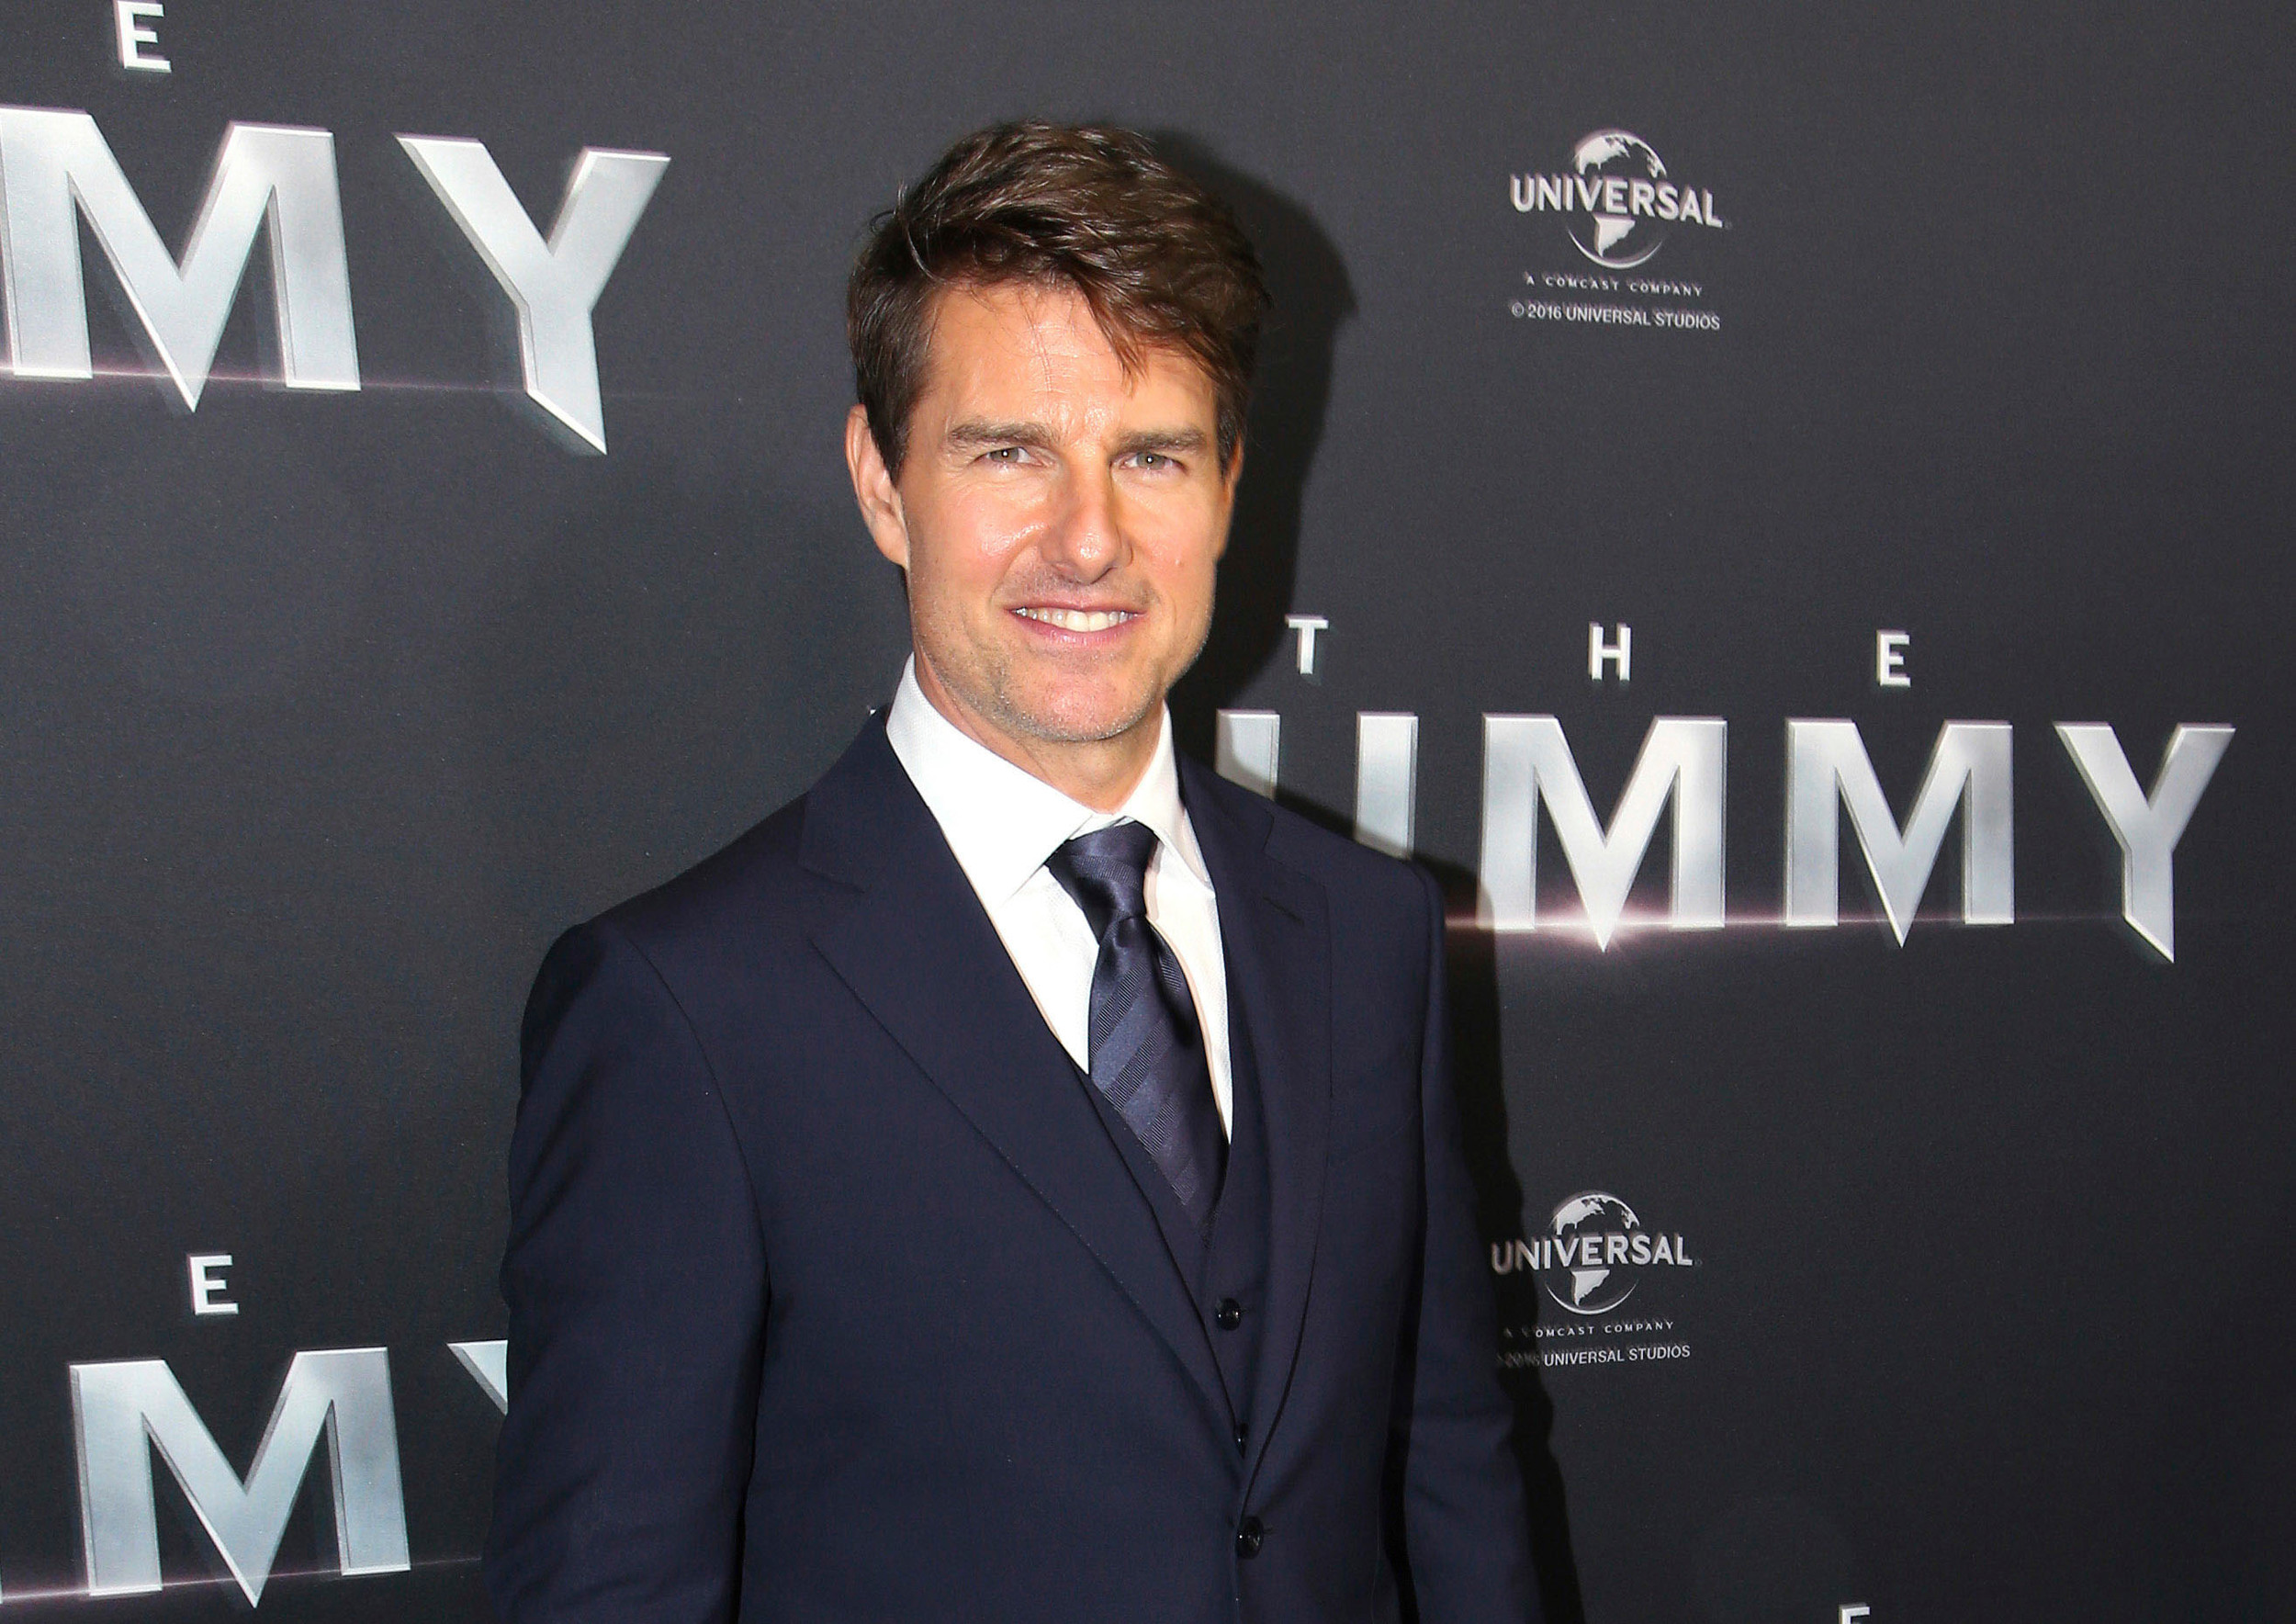 Tom Cruise confirms Top Gun sequel: 'It is definitely happening'